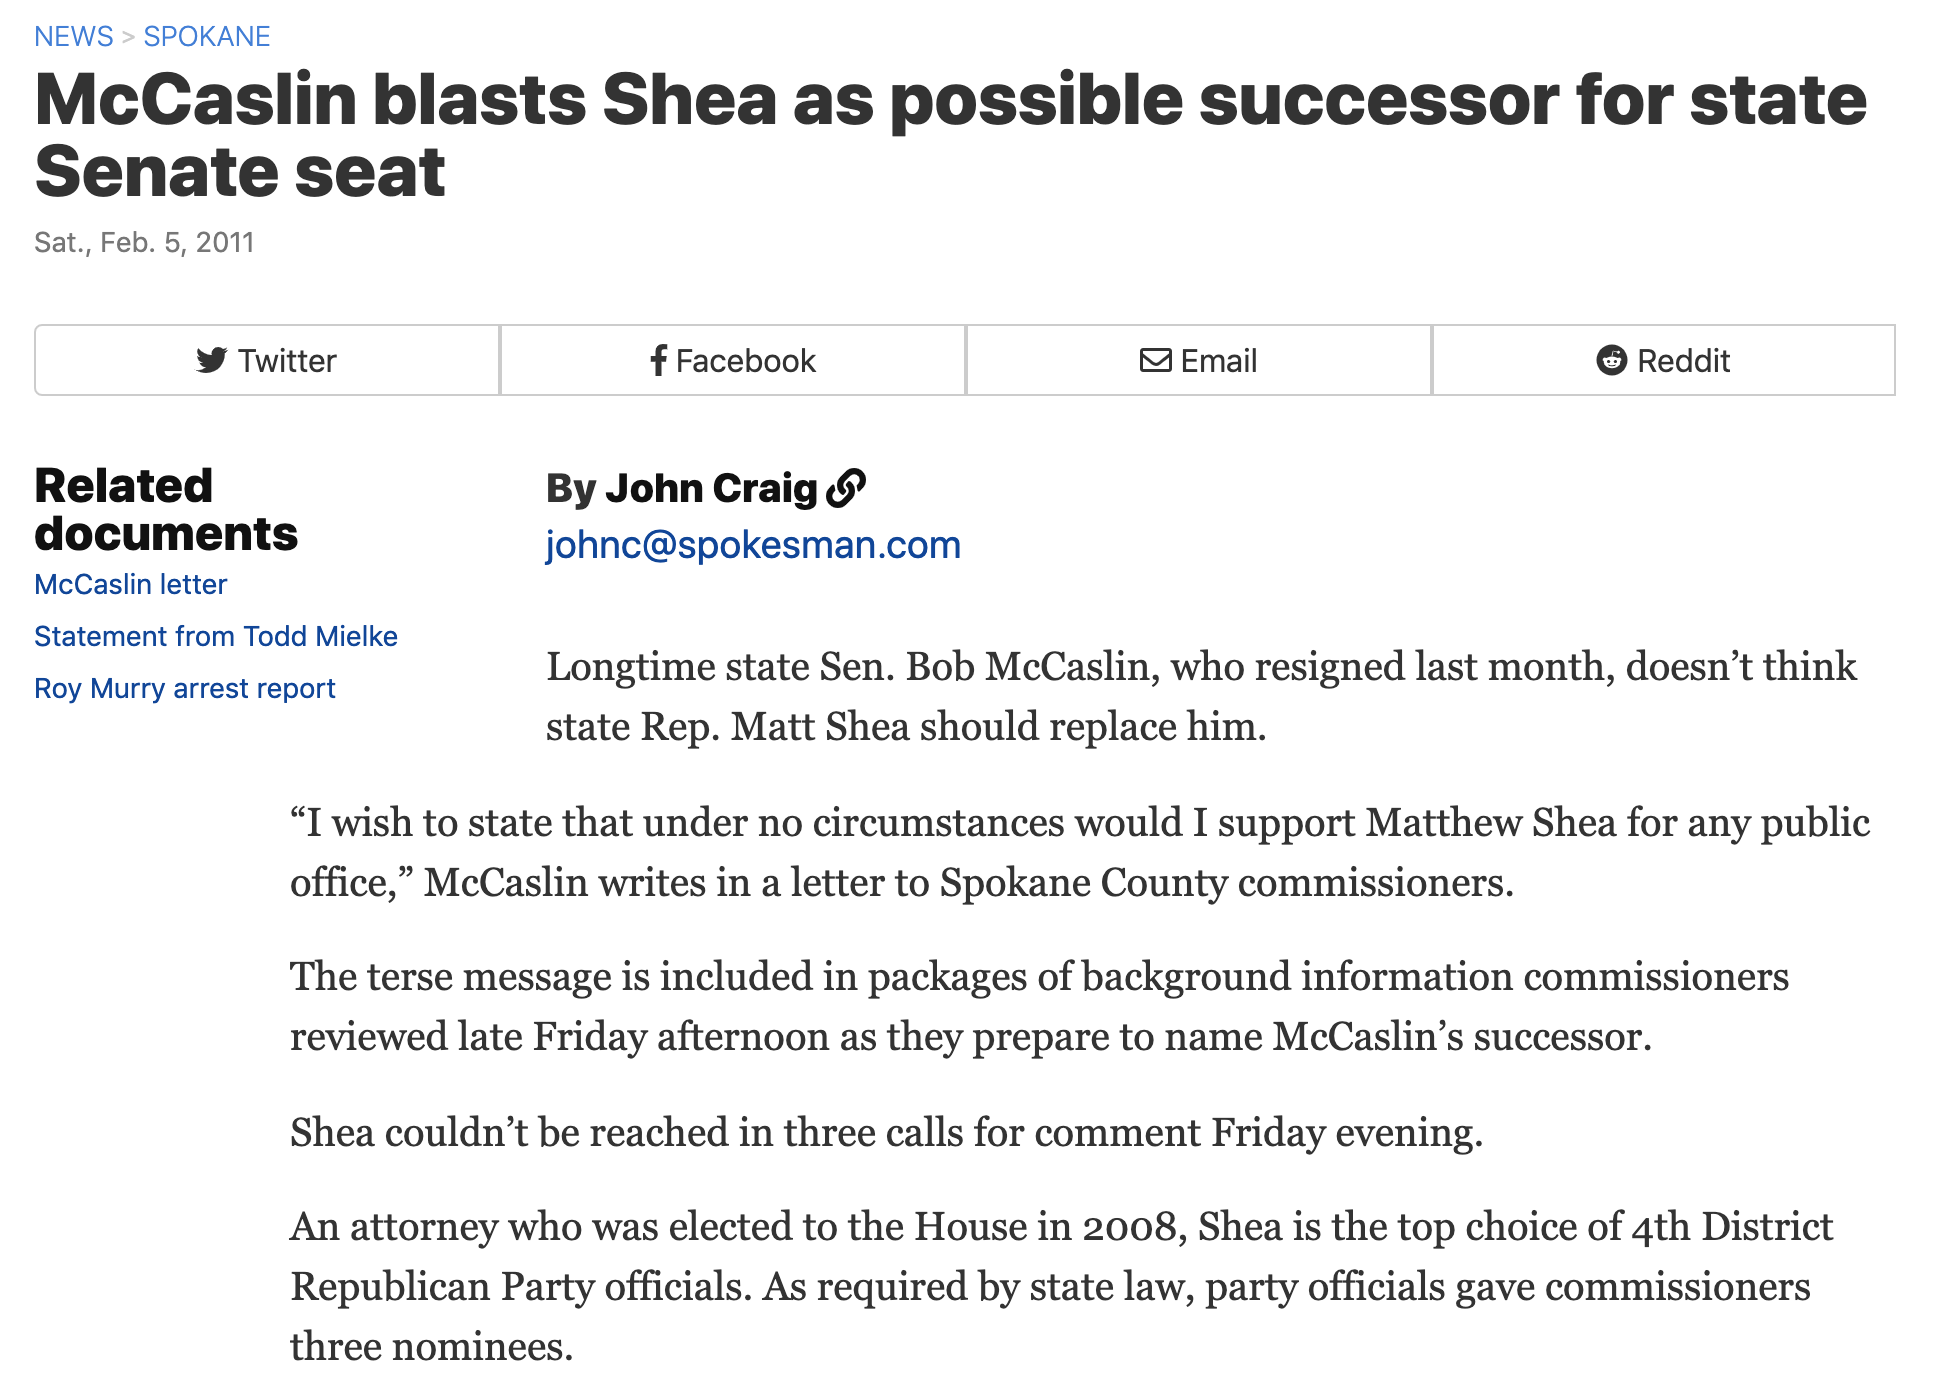 """The dossiers also include a five-page sworn statement in which County Commissioner Todd Mielke says Shea subjected him to an outburst of ""spontaneous, extreme anger.""  He said in an interview that he wants an unequivocal answer from Shea about his ex-wife's allegation that ""he was disarmed by his commander in Iraq and called in for a psychiatric evaluation for anger management problems.""""   CLICK HERE FOR FULL ARTICLE"